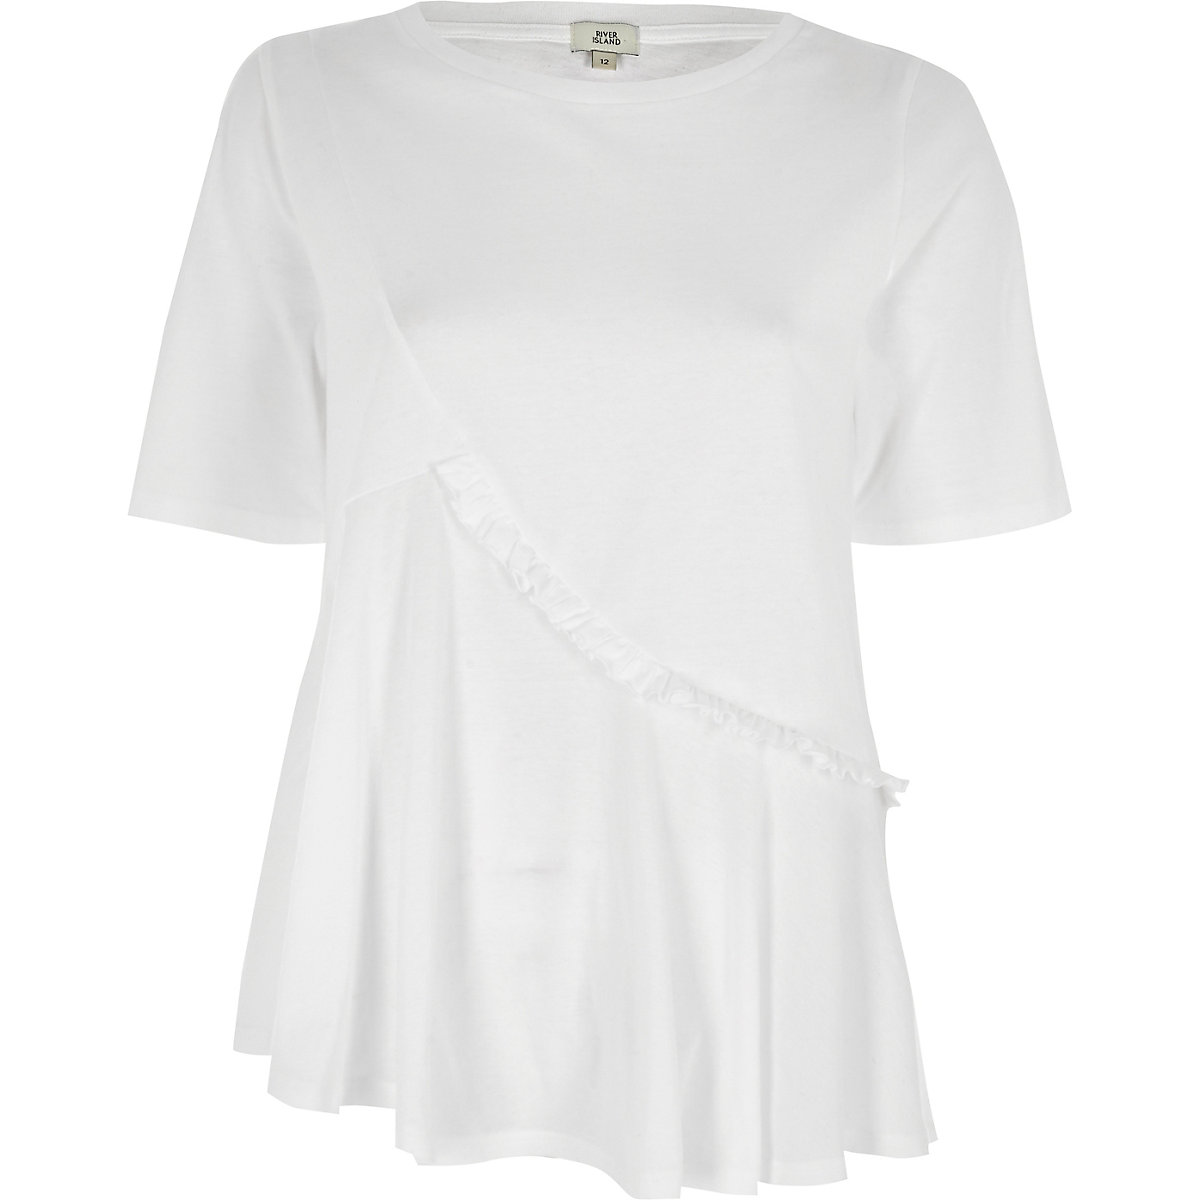 0cd05747f95 White asymmetric ruffle front T-shirt - T-Shirts - Tops - women